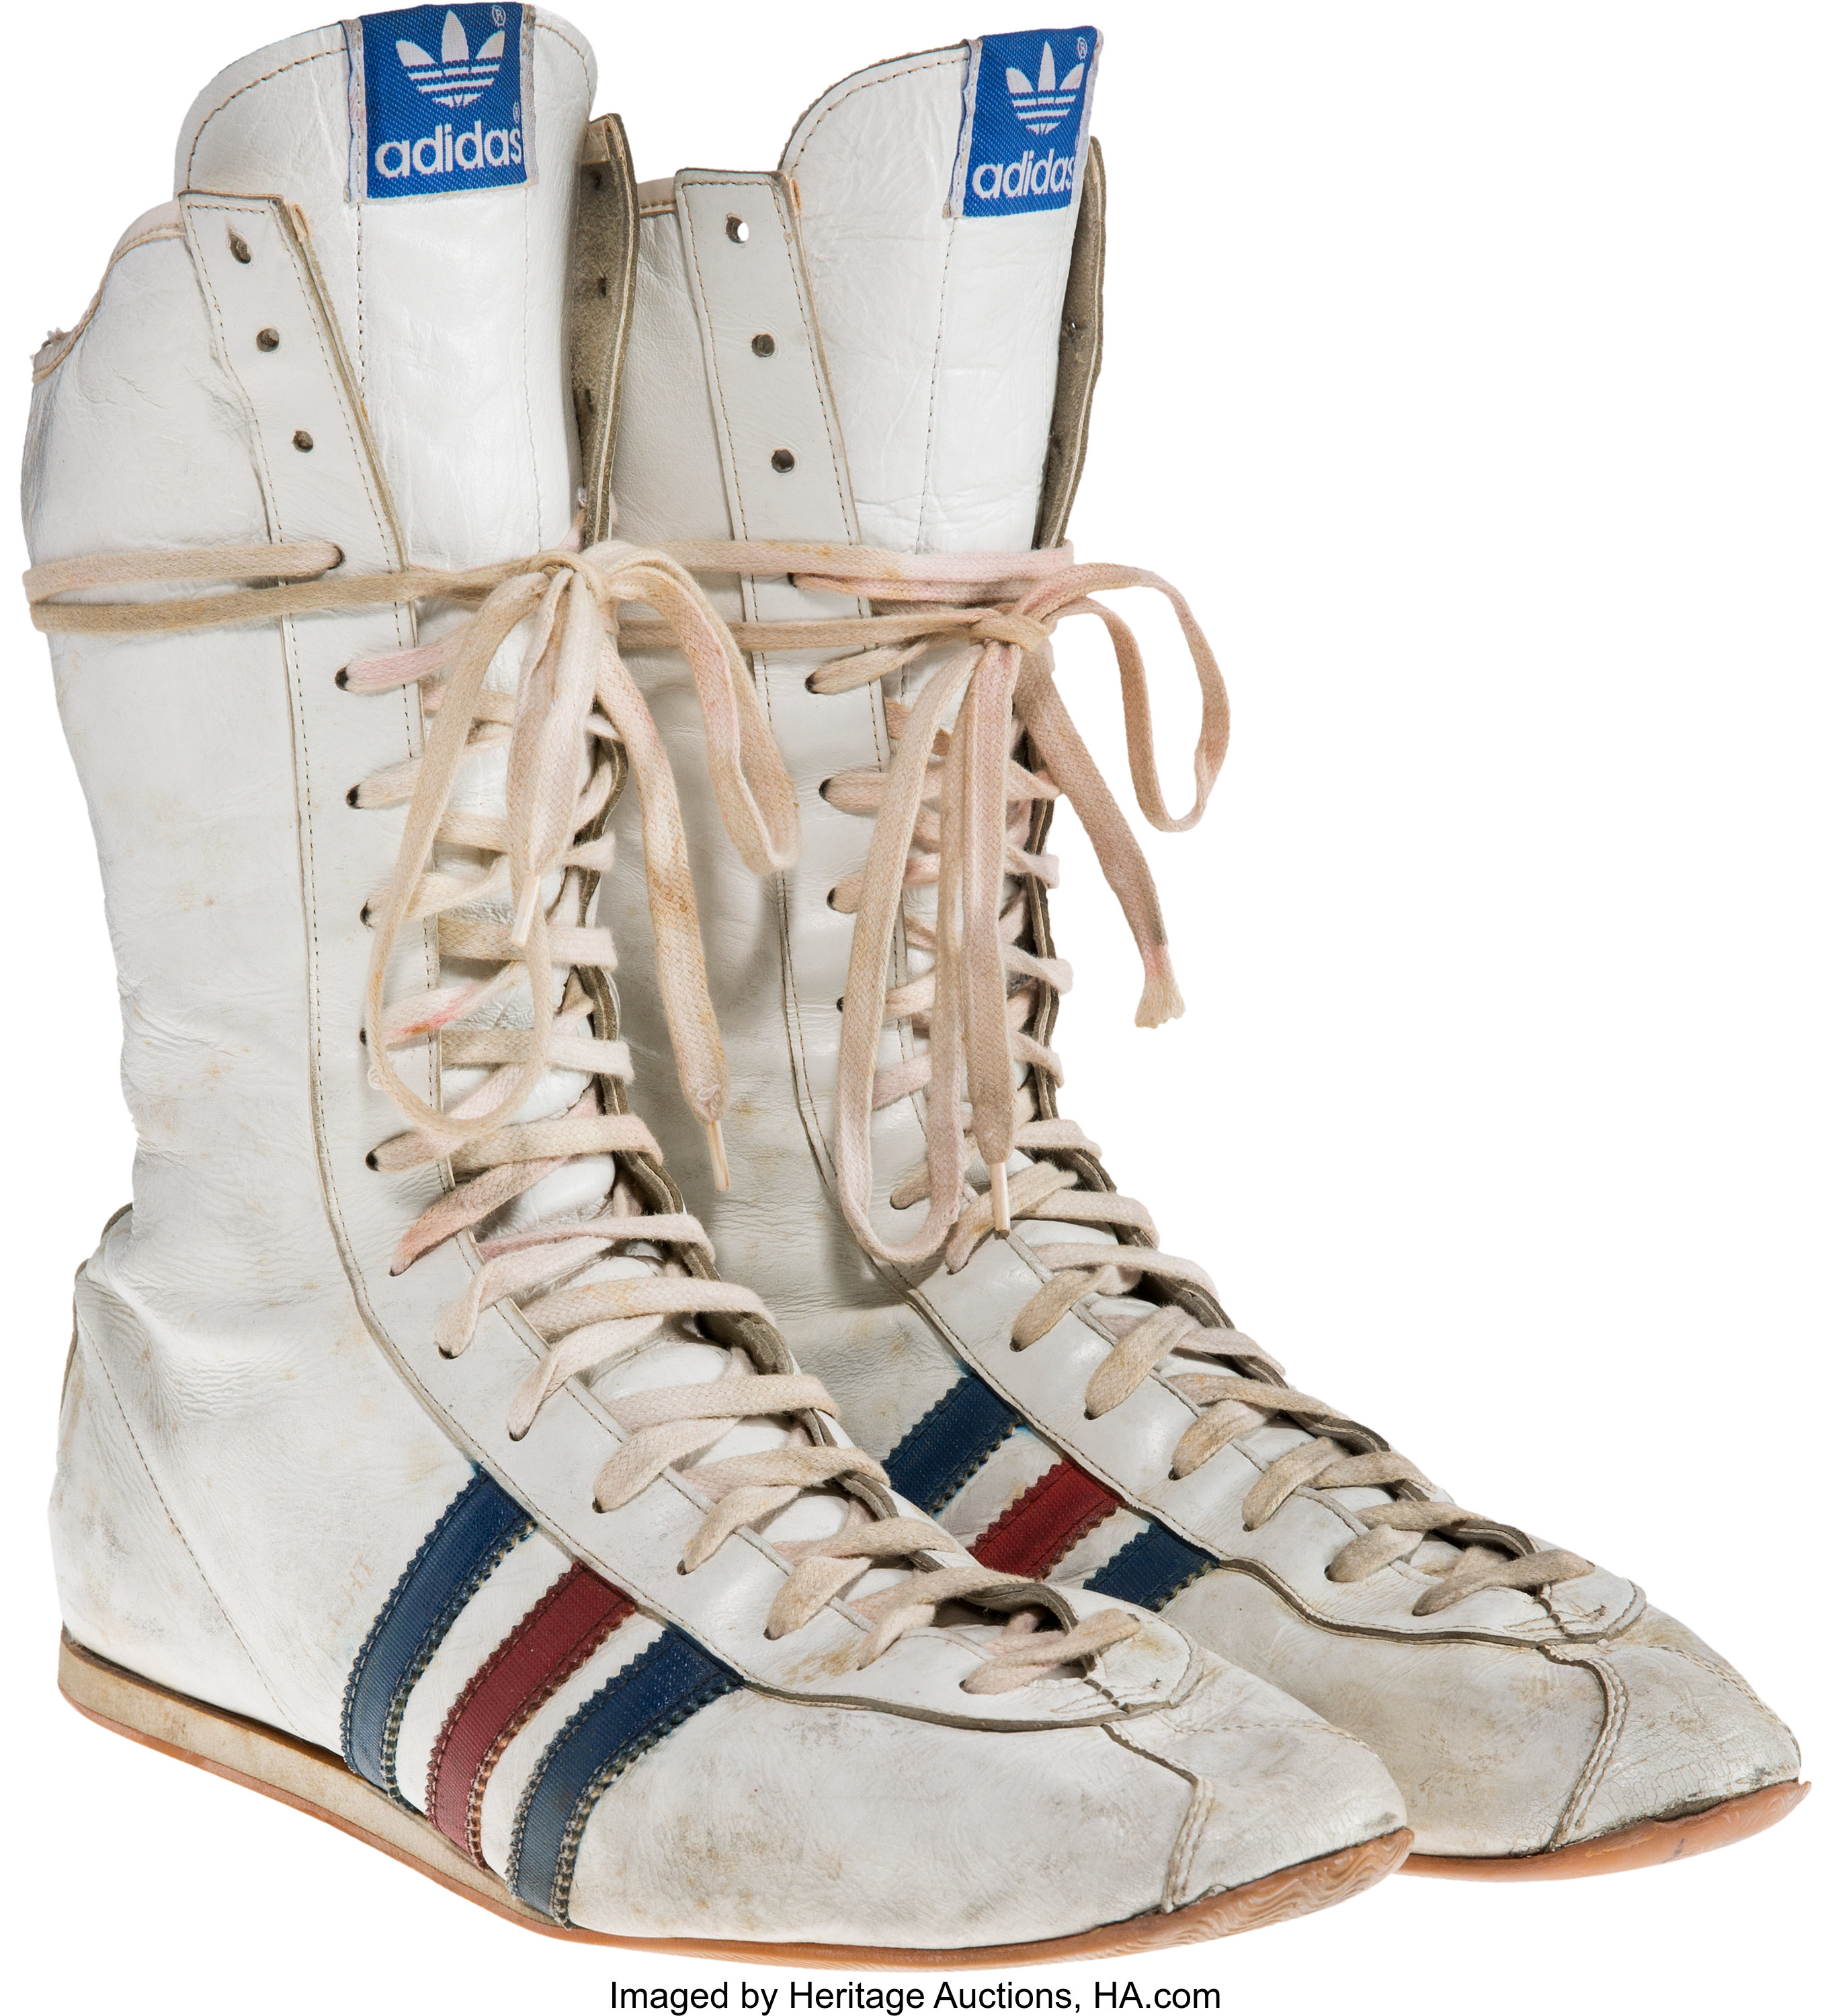 A Pair of Boxing Shoes from